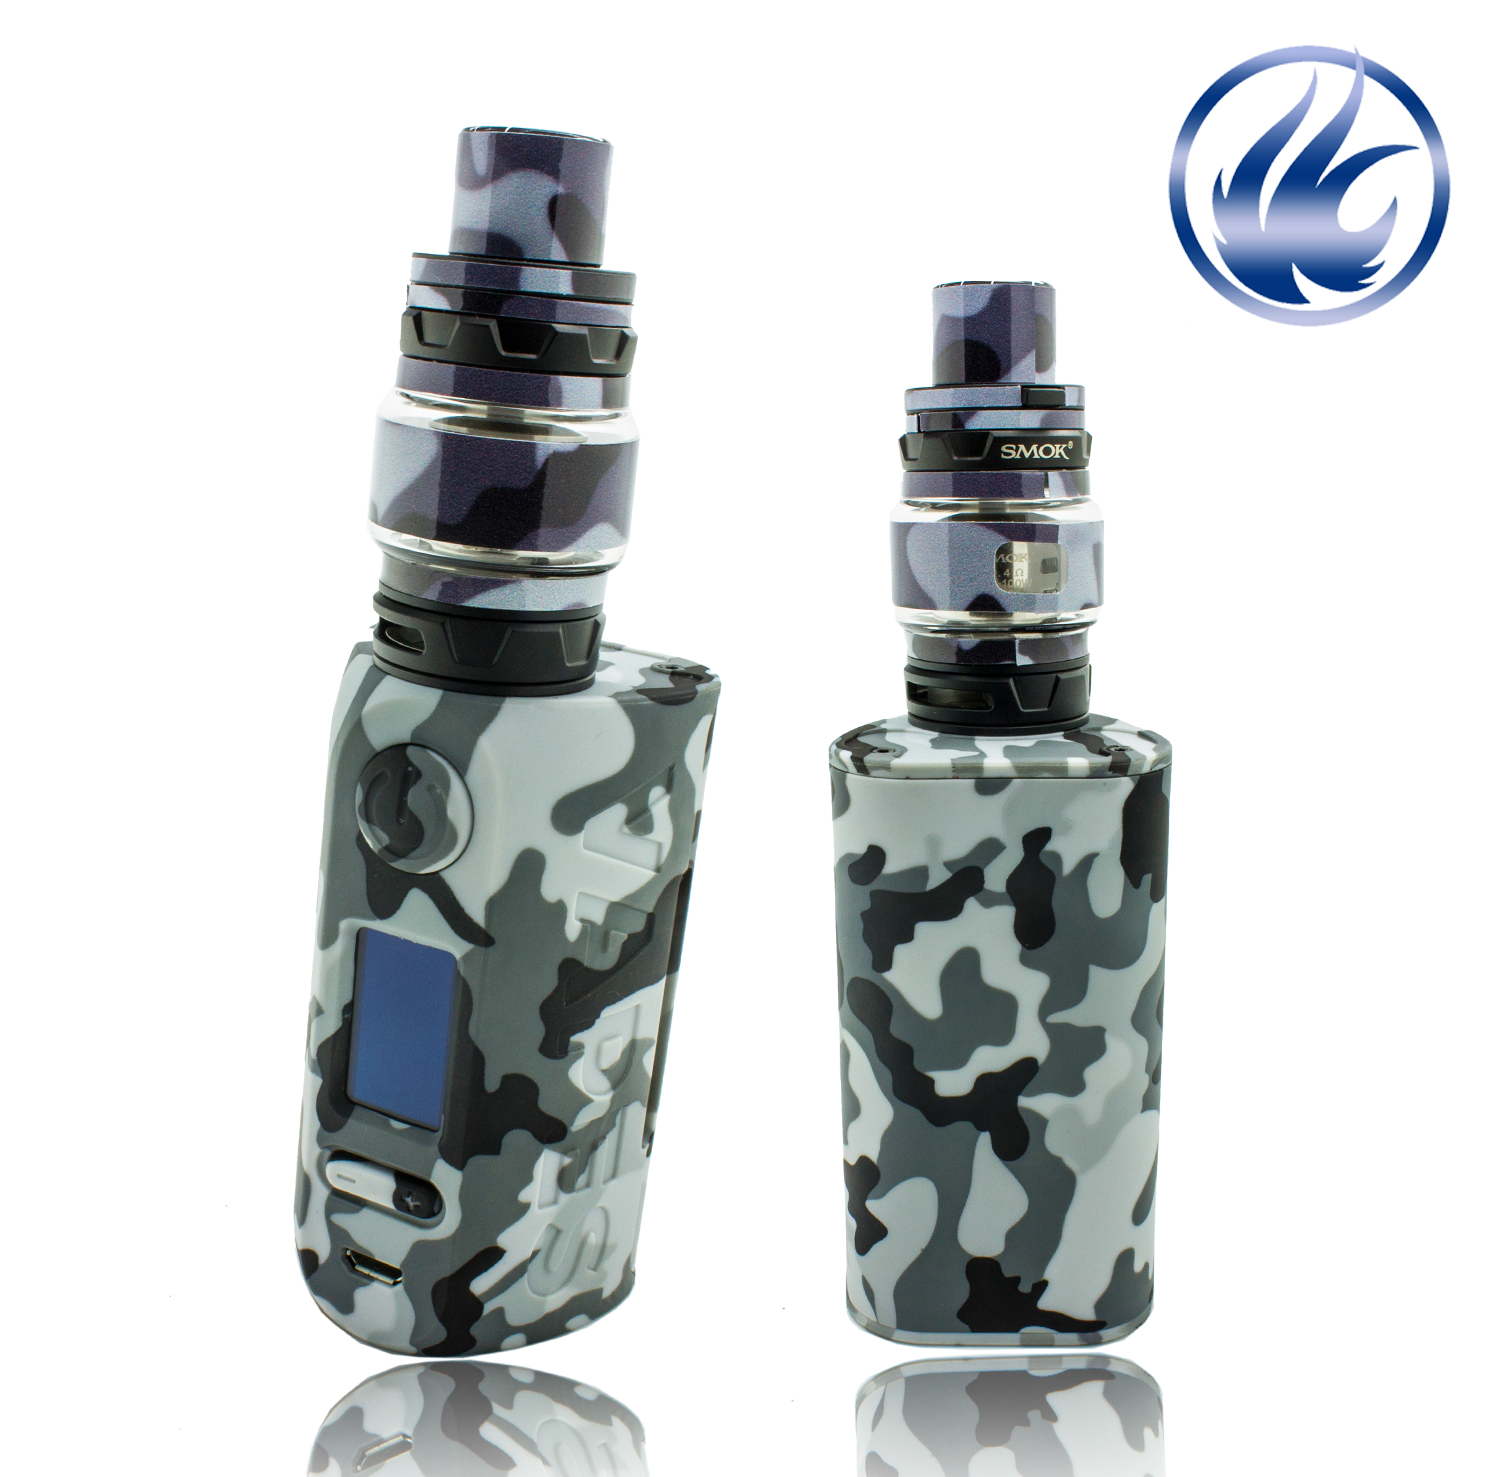 LIMITED EDITION: Puma Box Mod With Pre-Wrapped SMOK TFV12 Prince Tank!